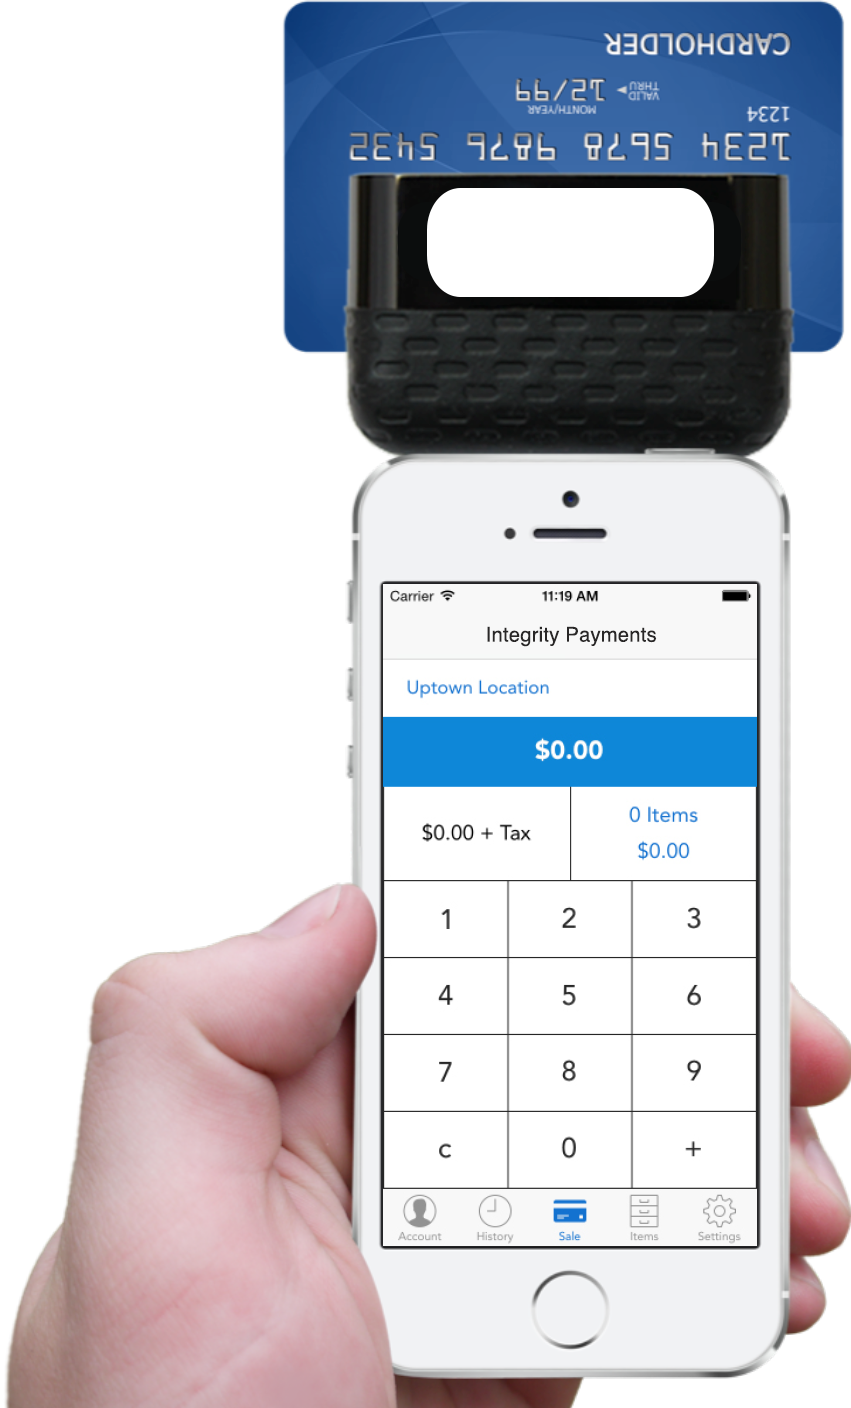 your customers can adjust tips and sign through the mobile device they can also receive the receipt through an email or a text